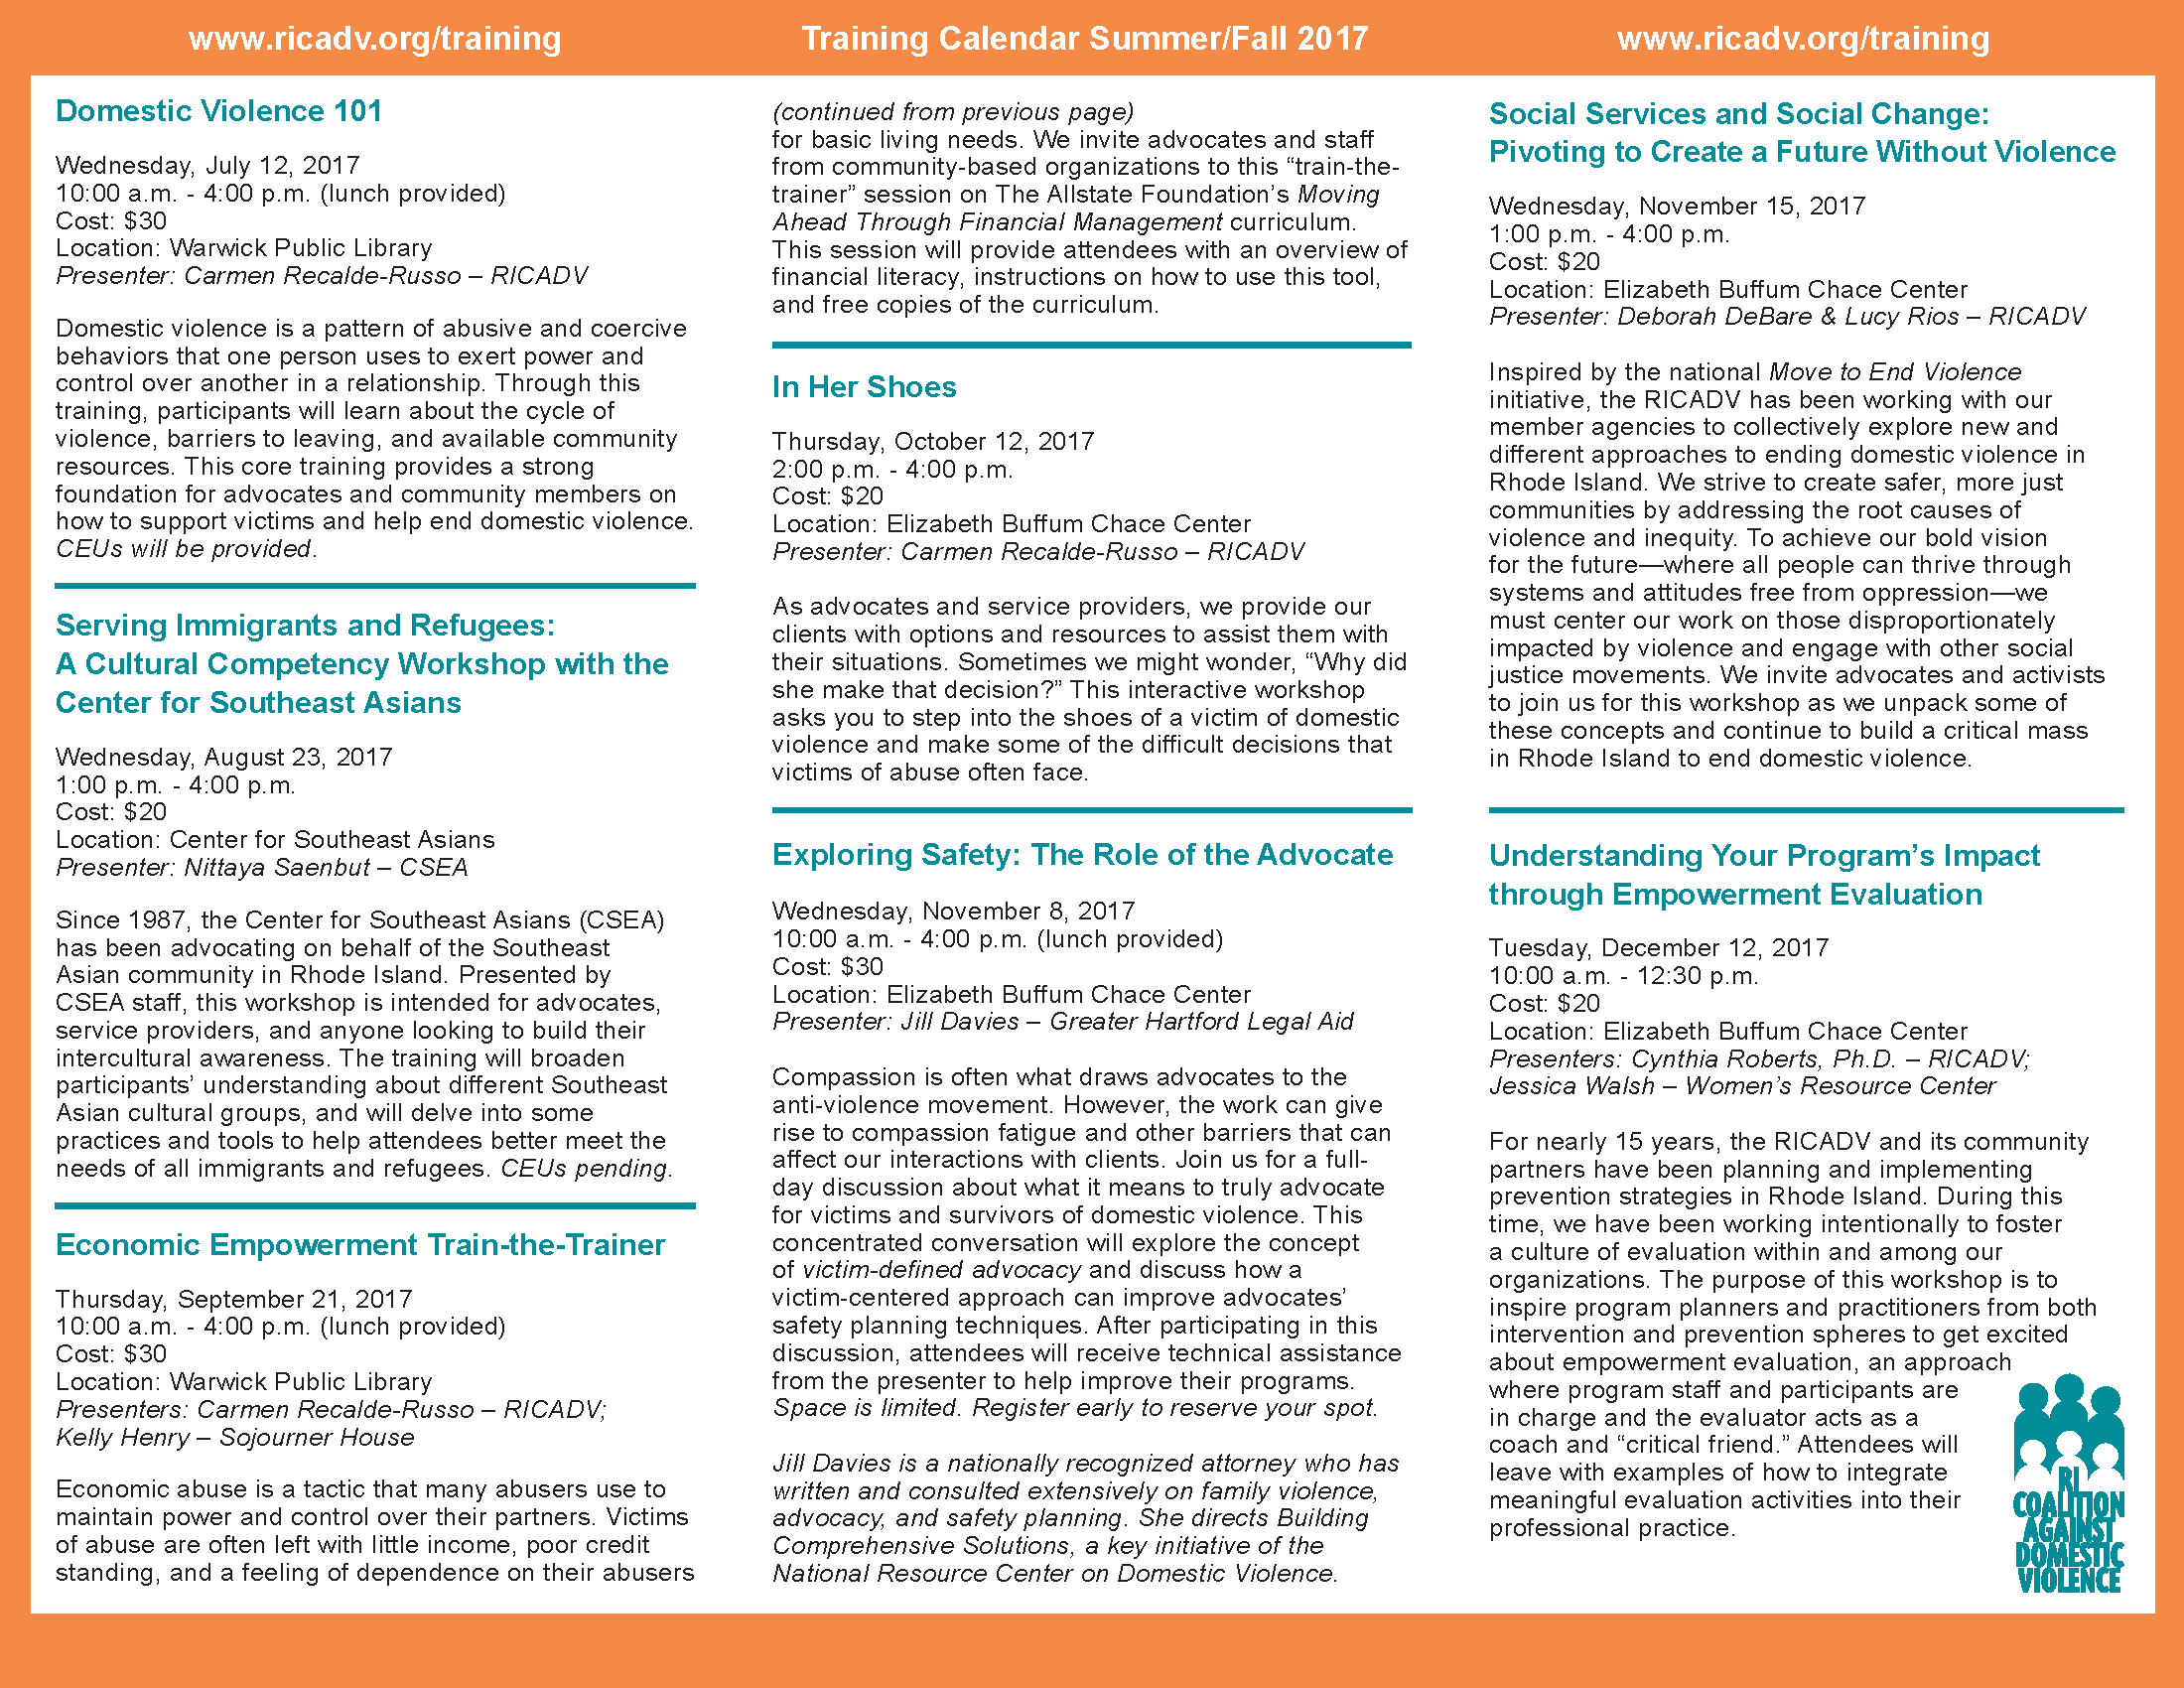 RICADV Training Calendar Summer Fall 2017